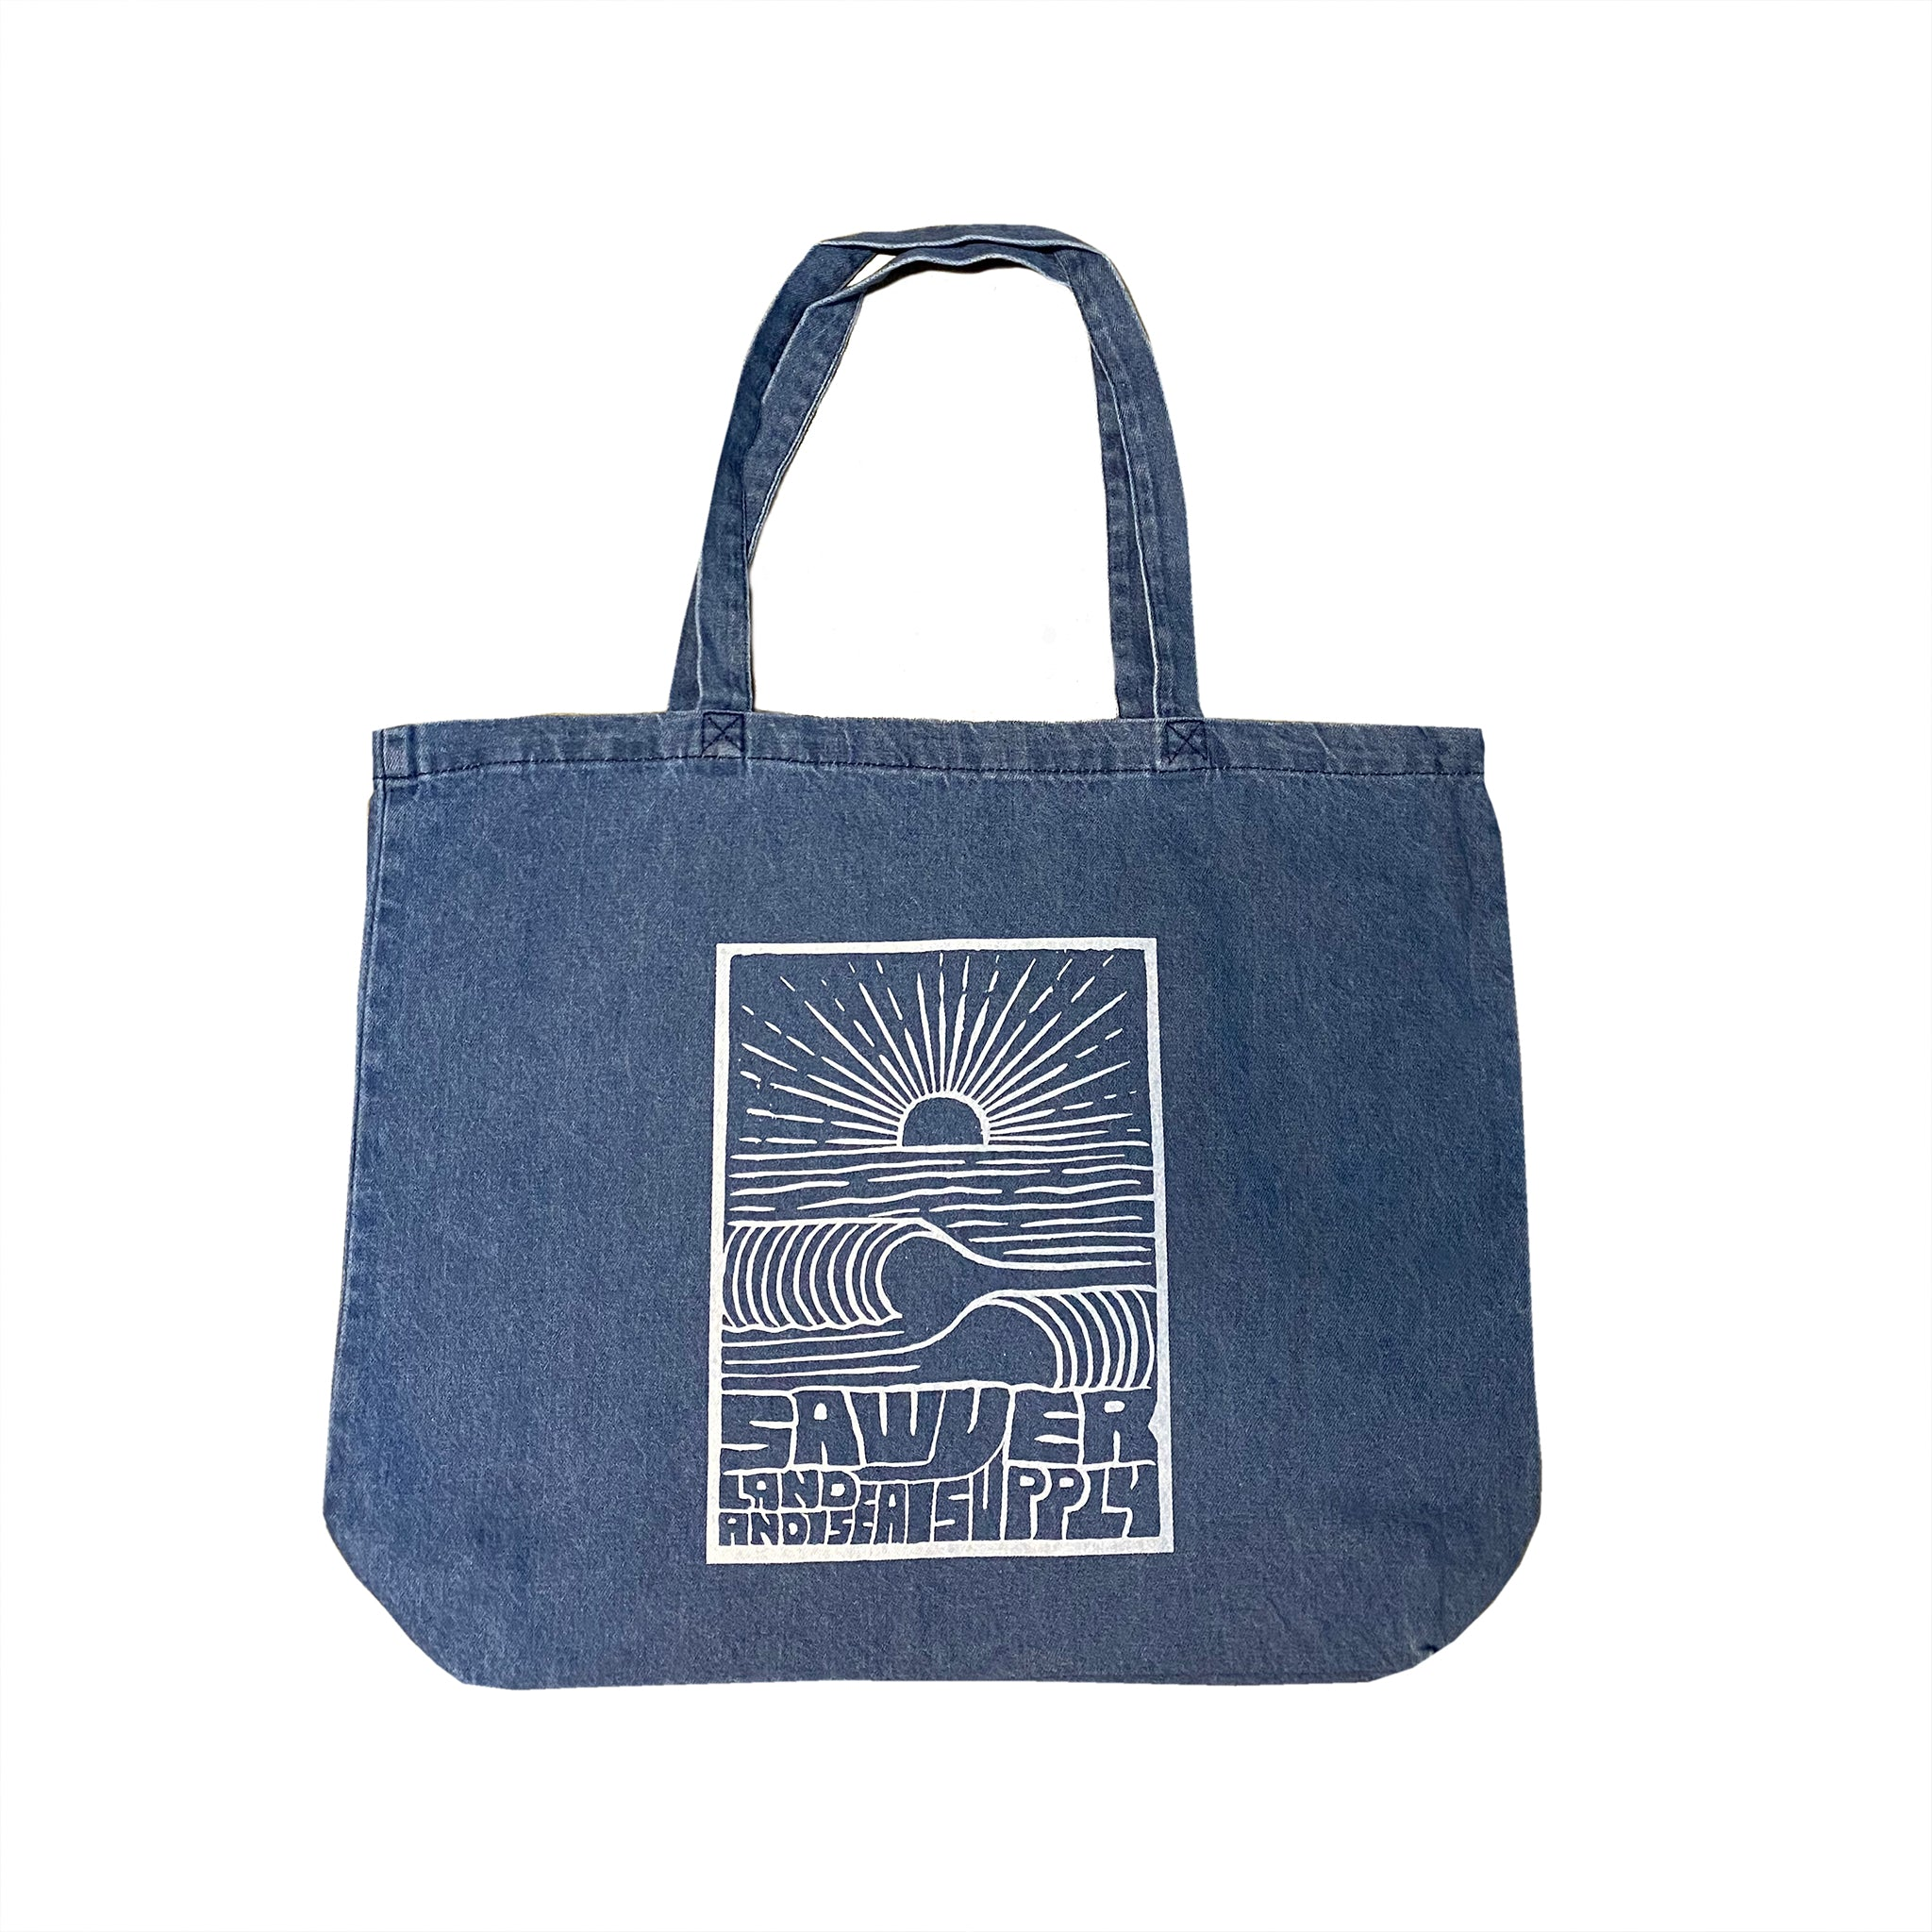 THE SUN SHINES SUPPLY TOTE